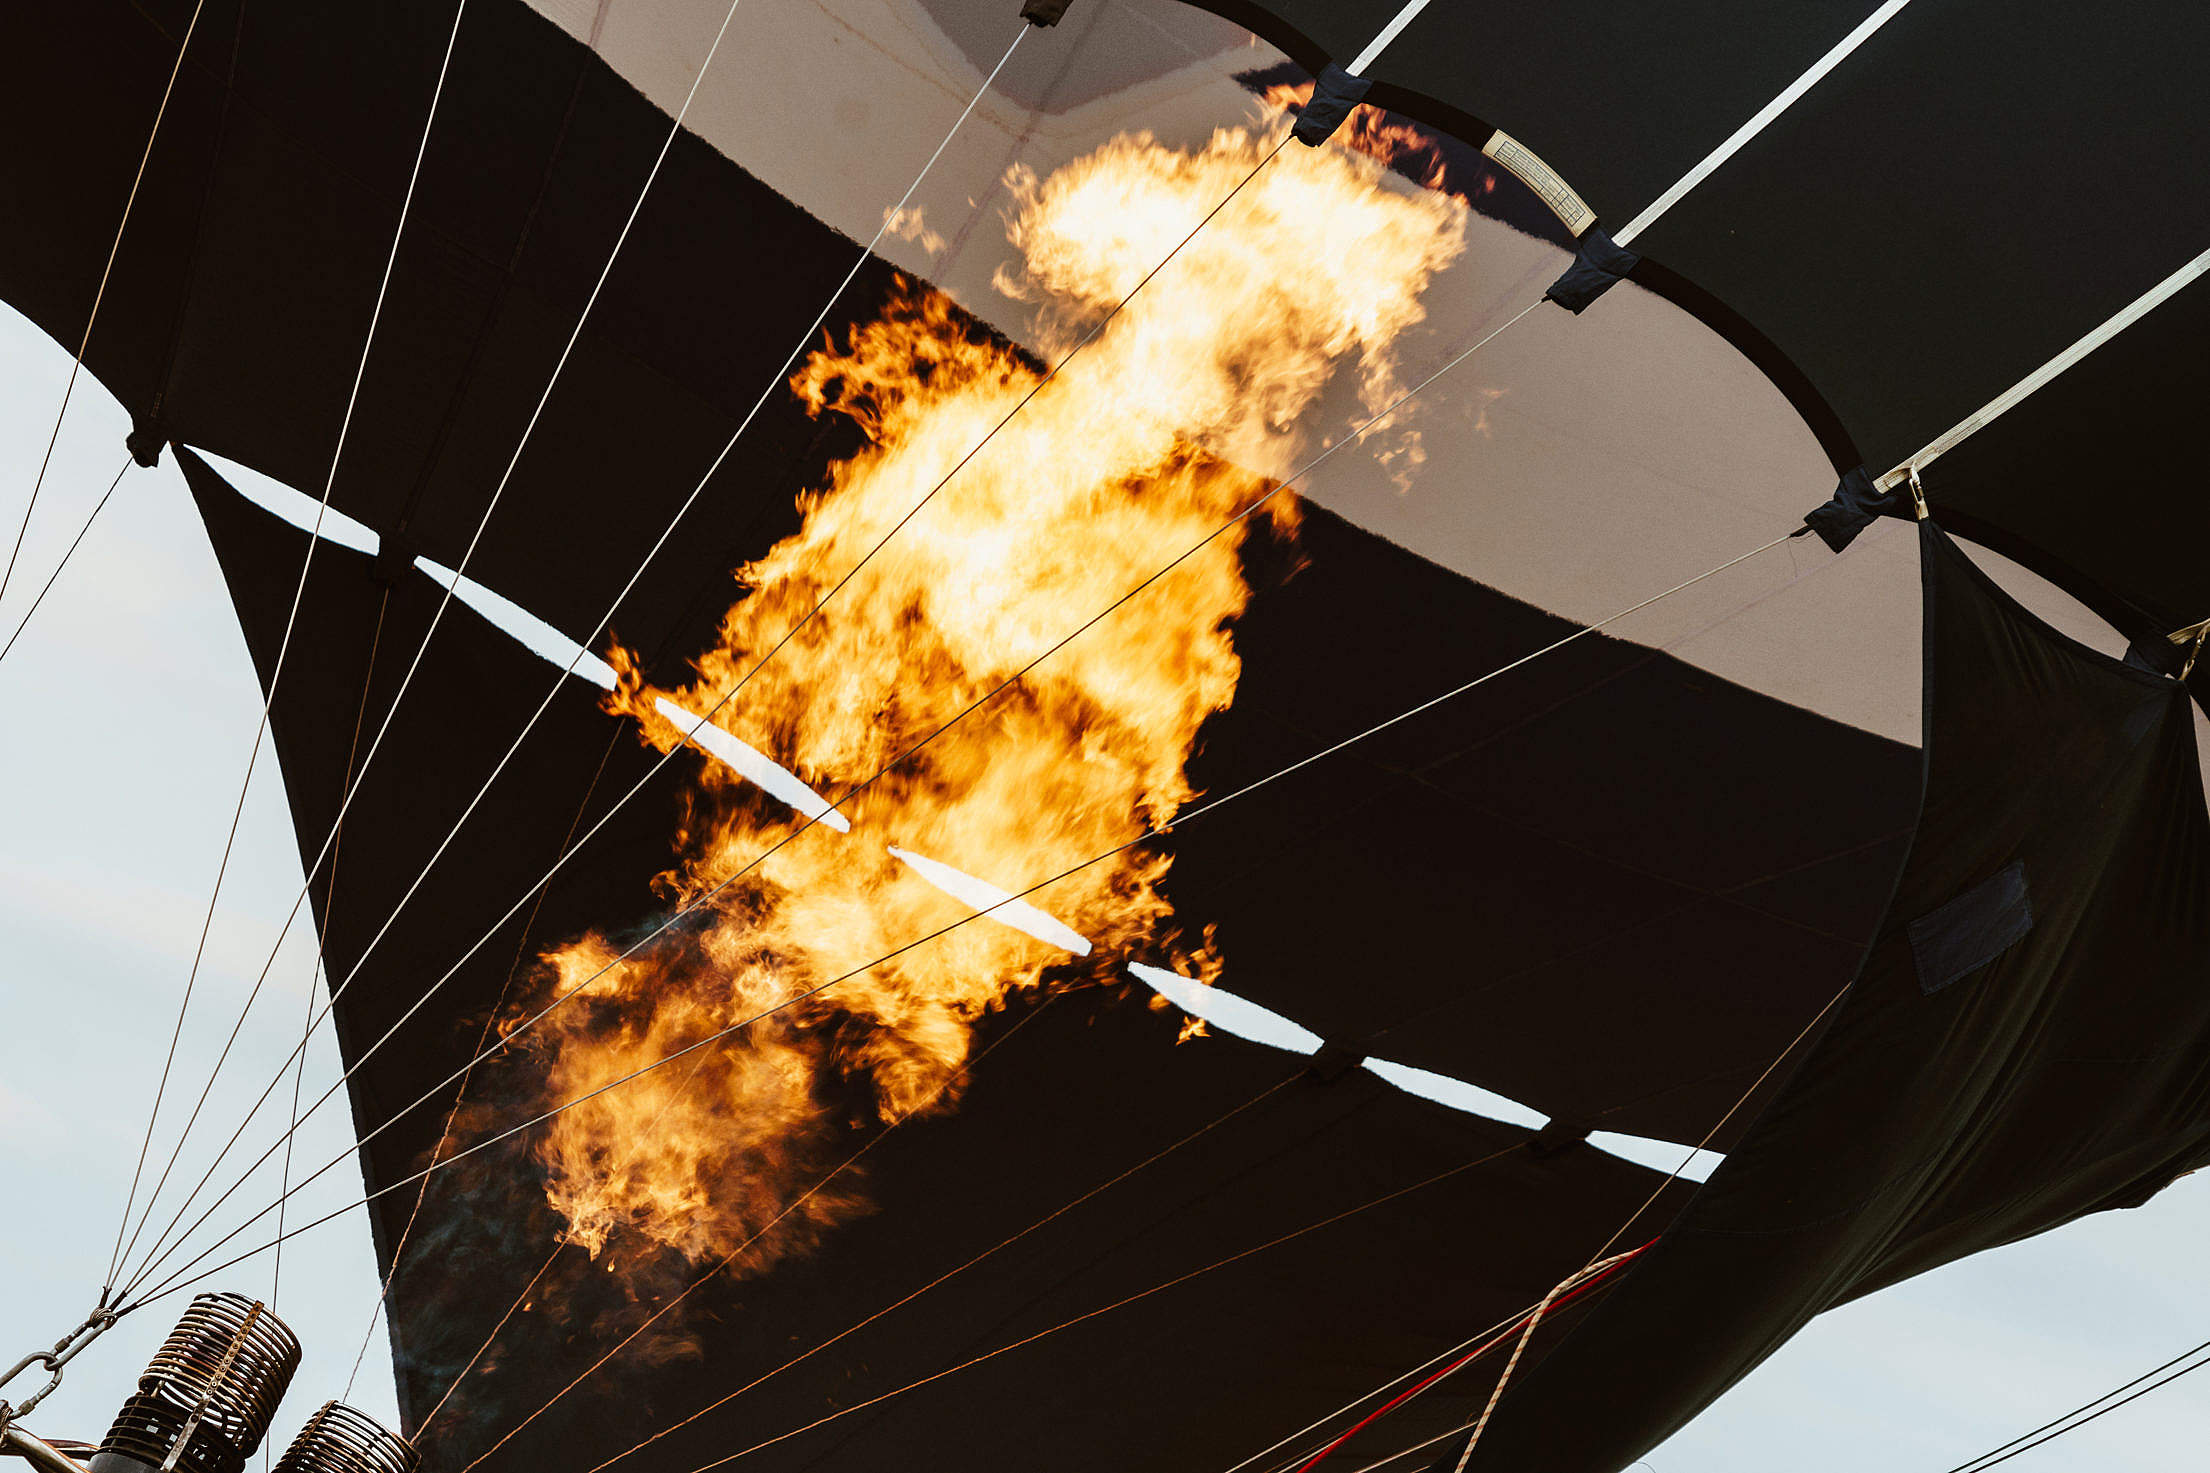 Download Hot Air Balloon Fire Free Stock Photo